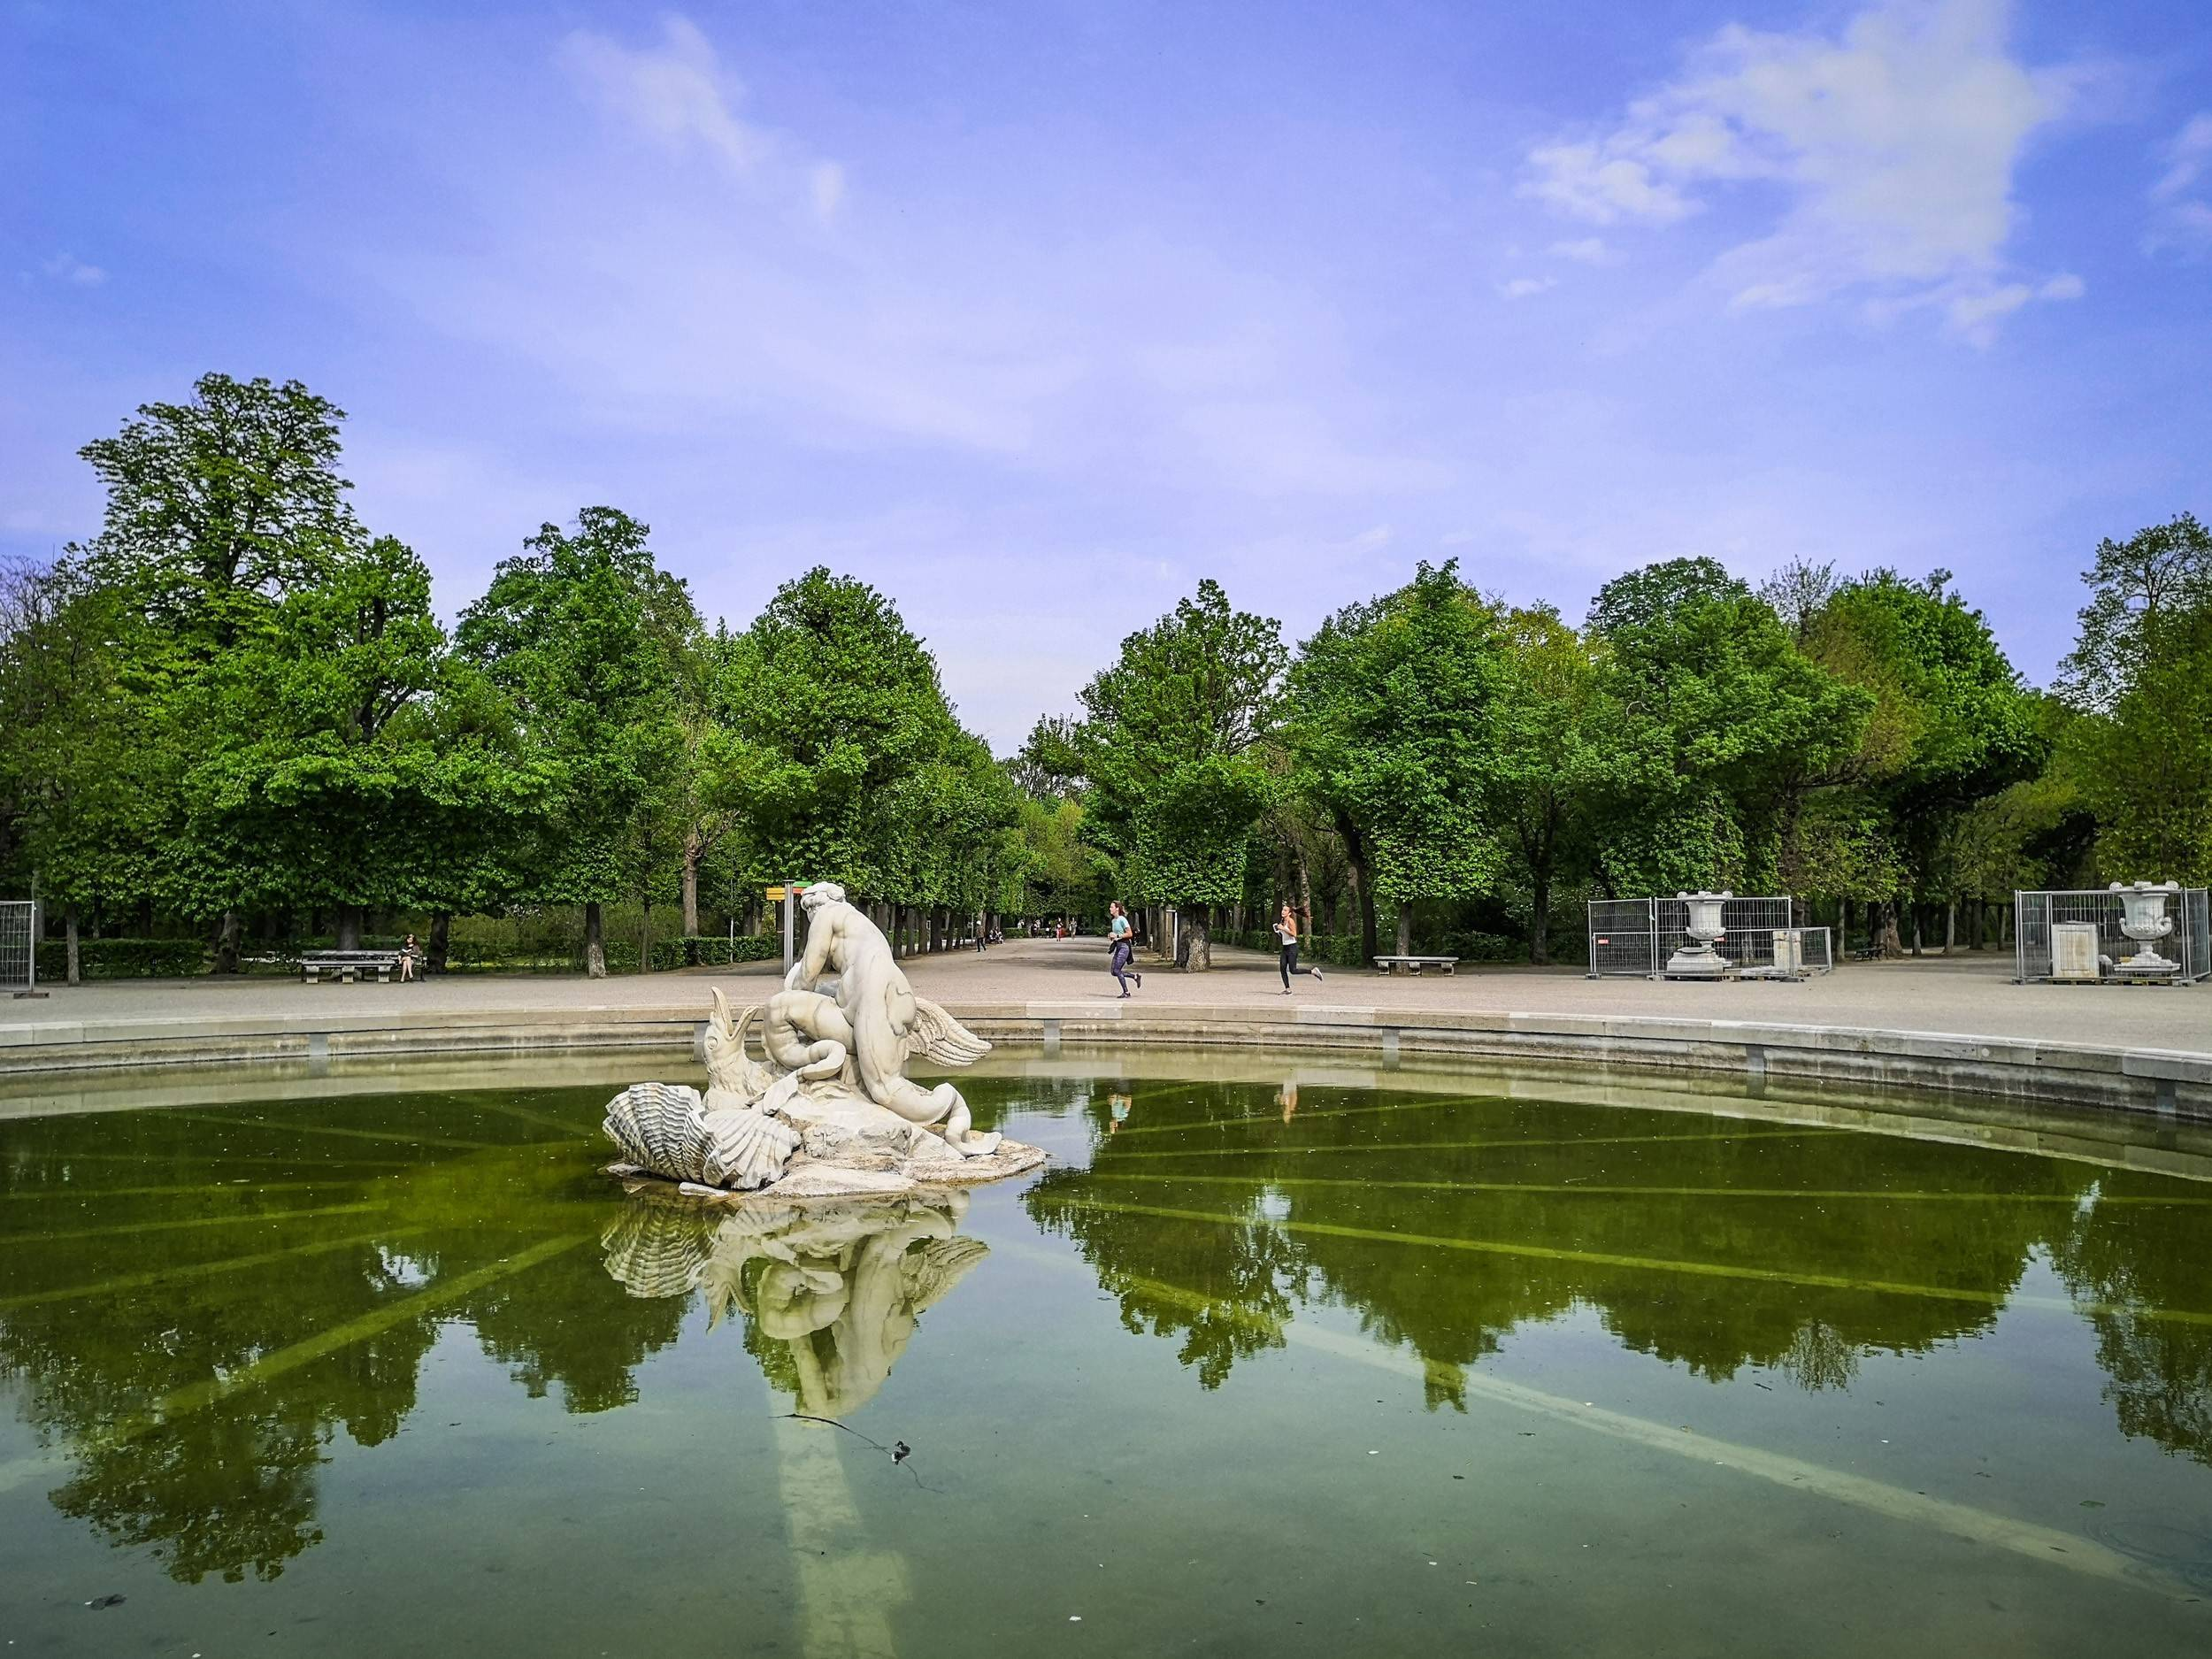 The Naiad Fountain in Schönbrunn, Vienna